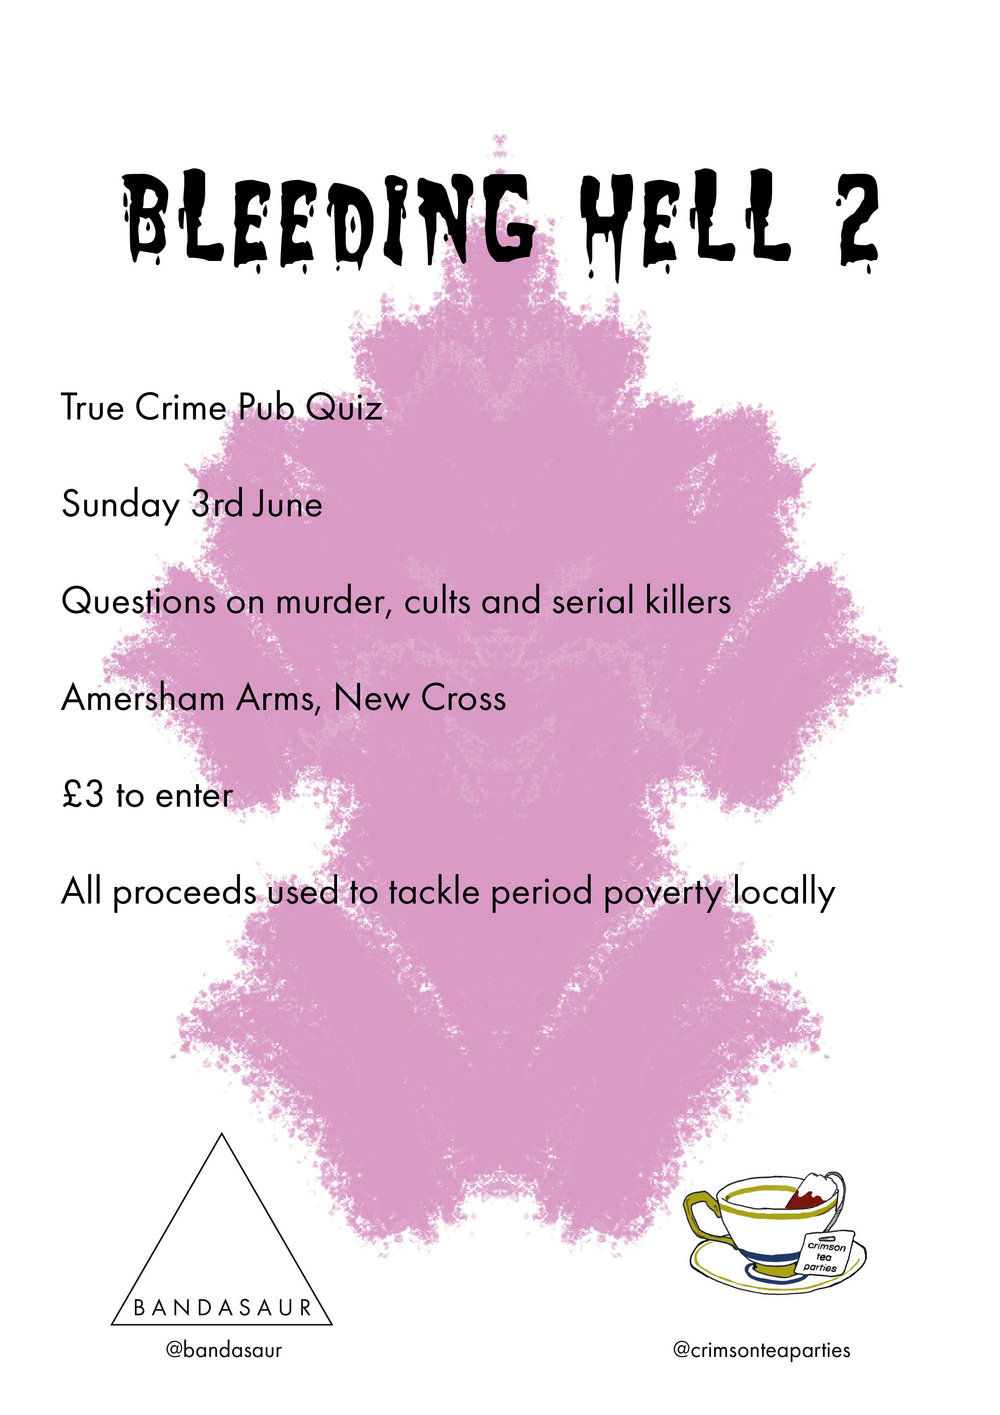 - My second pub quiz is coming up, book a table to avoid disappointment after the last one's success, unexpected by literally everybody. It's only £3 per person and there are alcoholic prizes for the winners and the best team name, as well as a Bleeding Hell trophy, envy of serial killers everywhere.